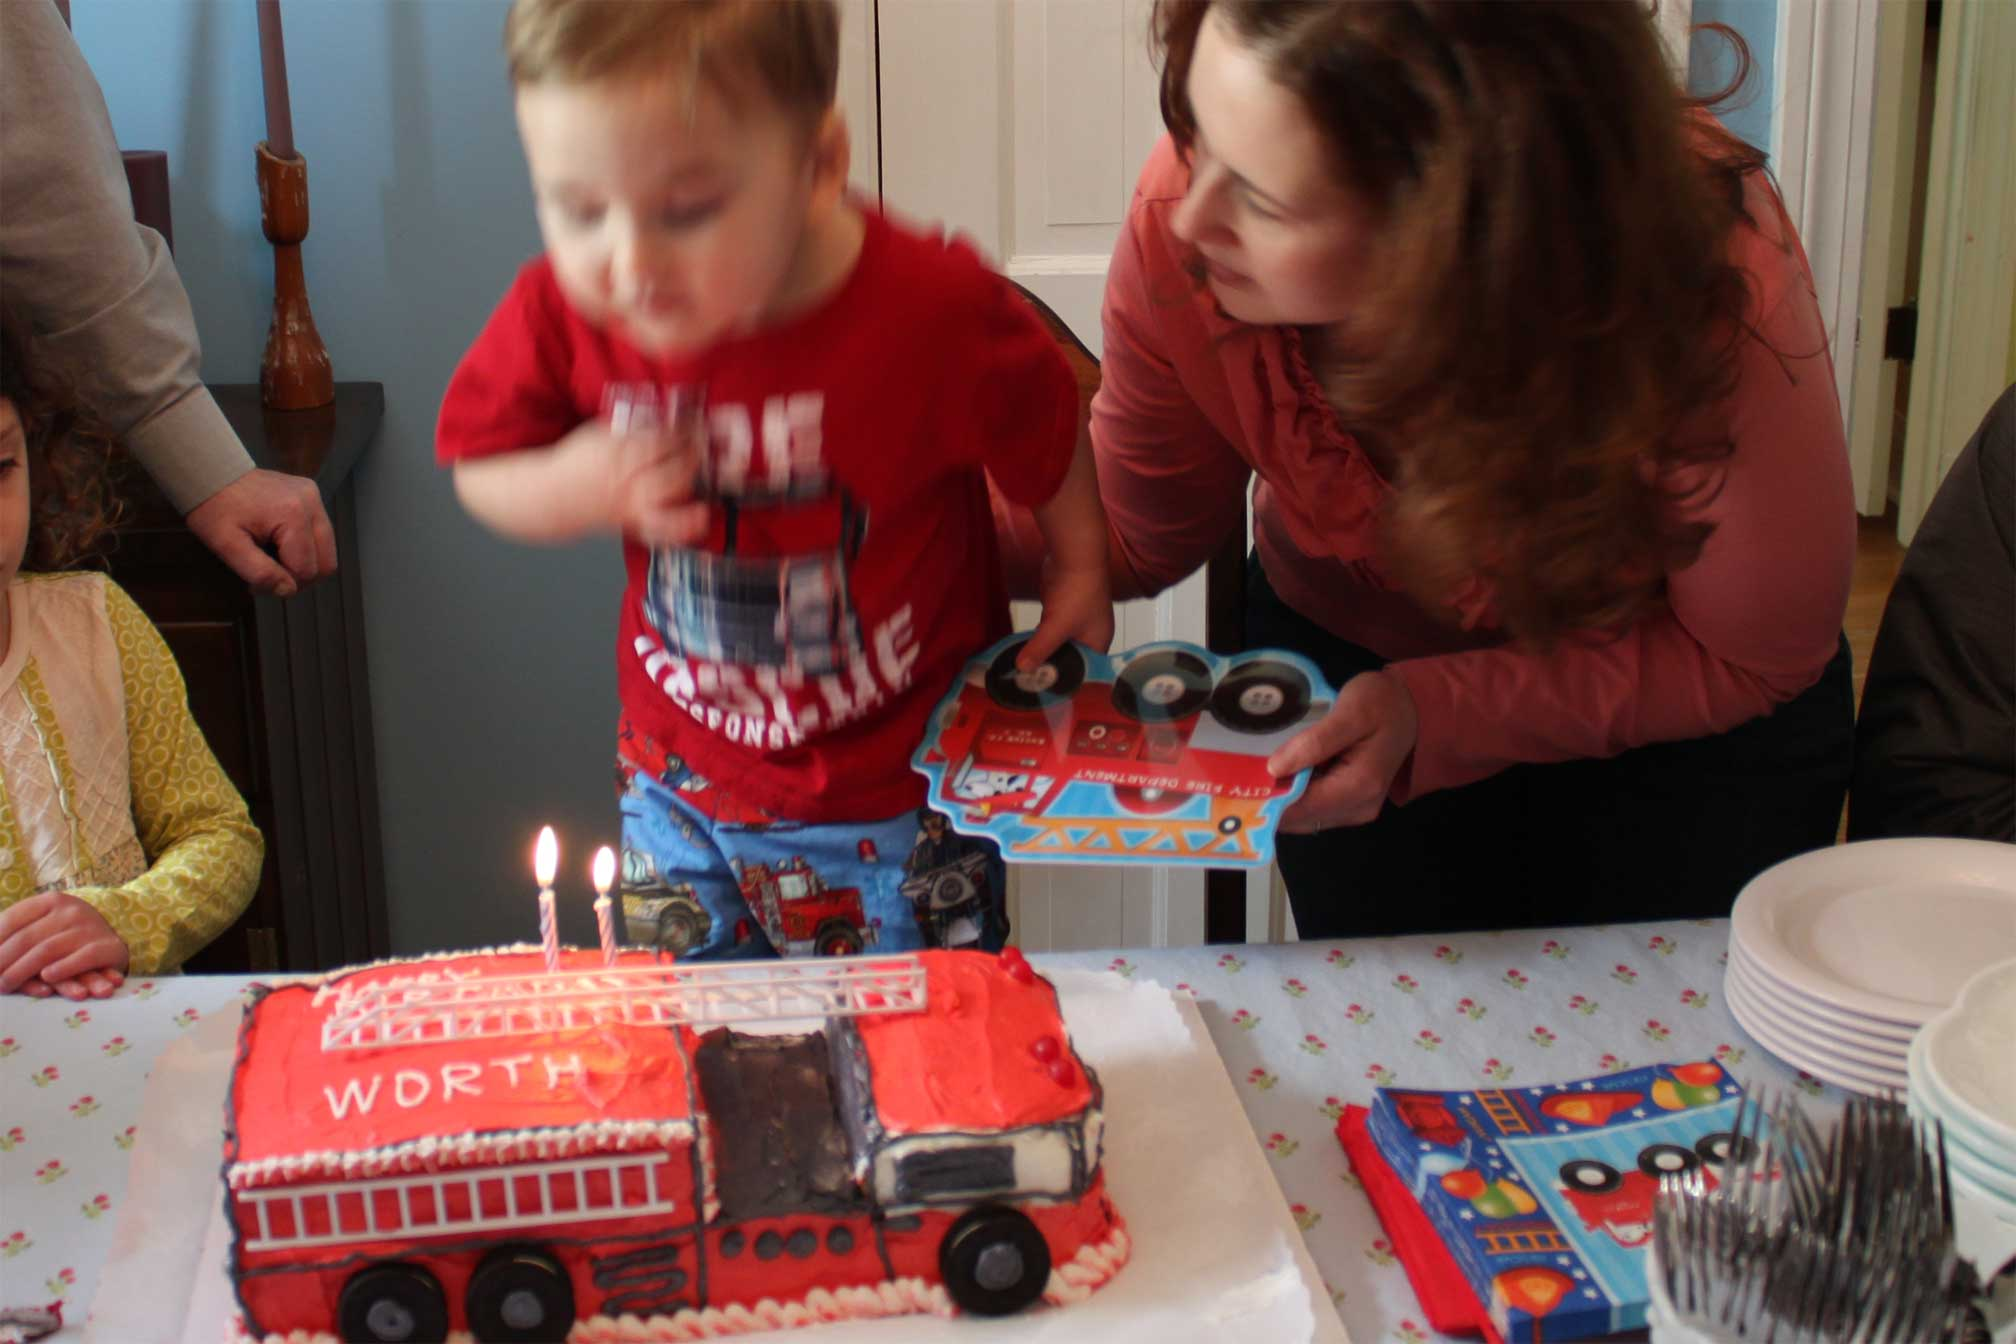 My Mom Made Worths Birthday Cake In The Shape Of A Fire Truck Which He Identifies By Sound It Makes Awoooooooo I Little Gift Bags For